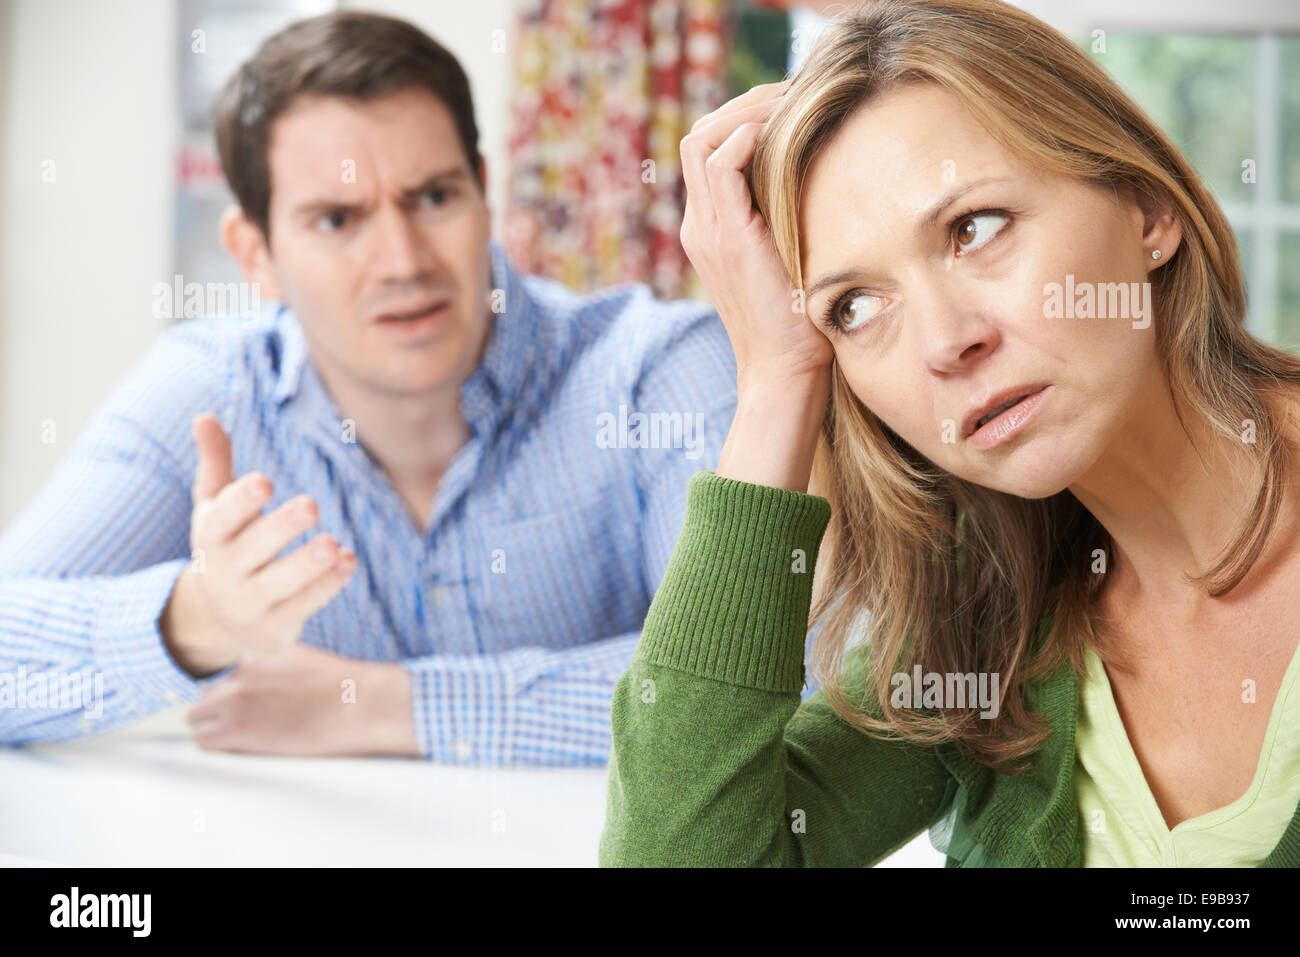 Couple Having Arguement At Home - Stock Image